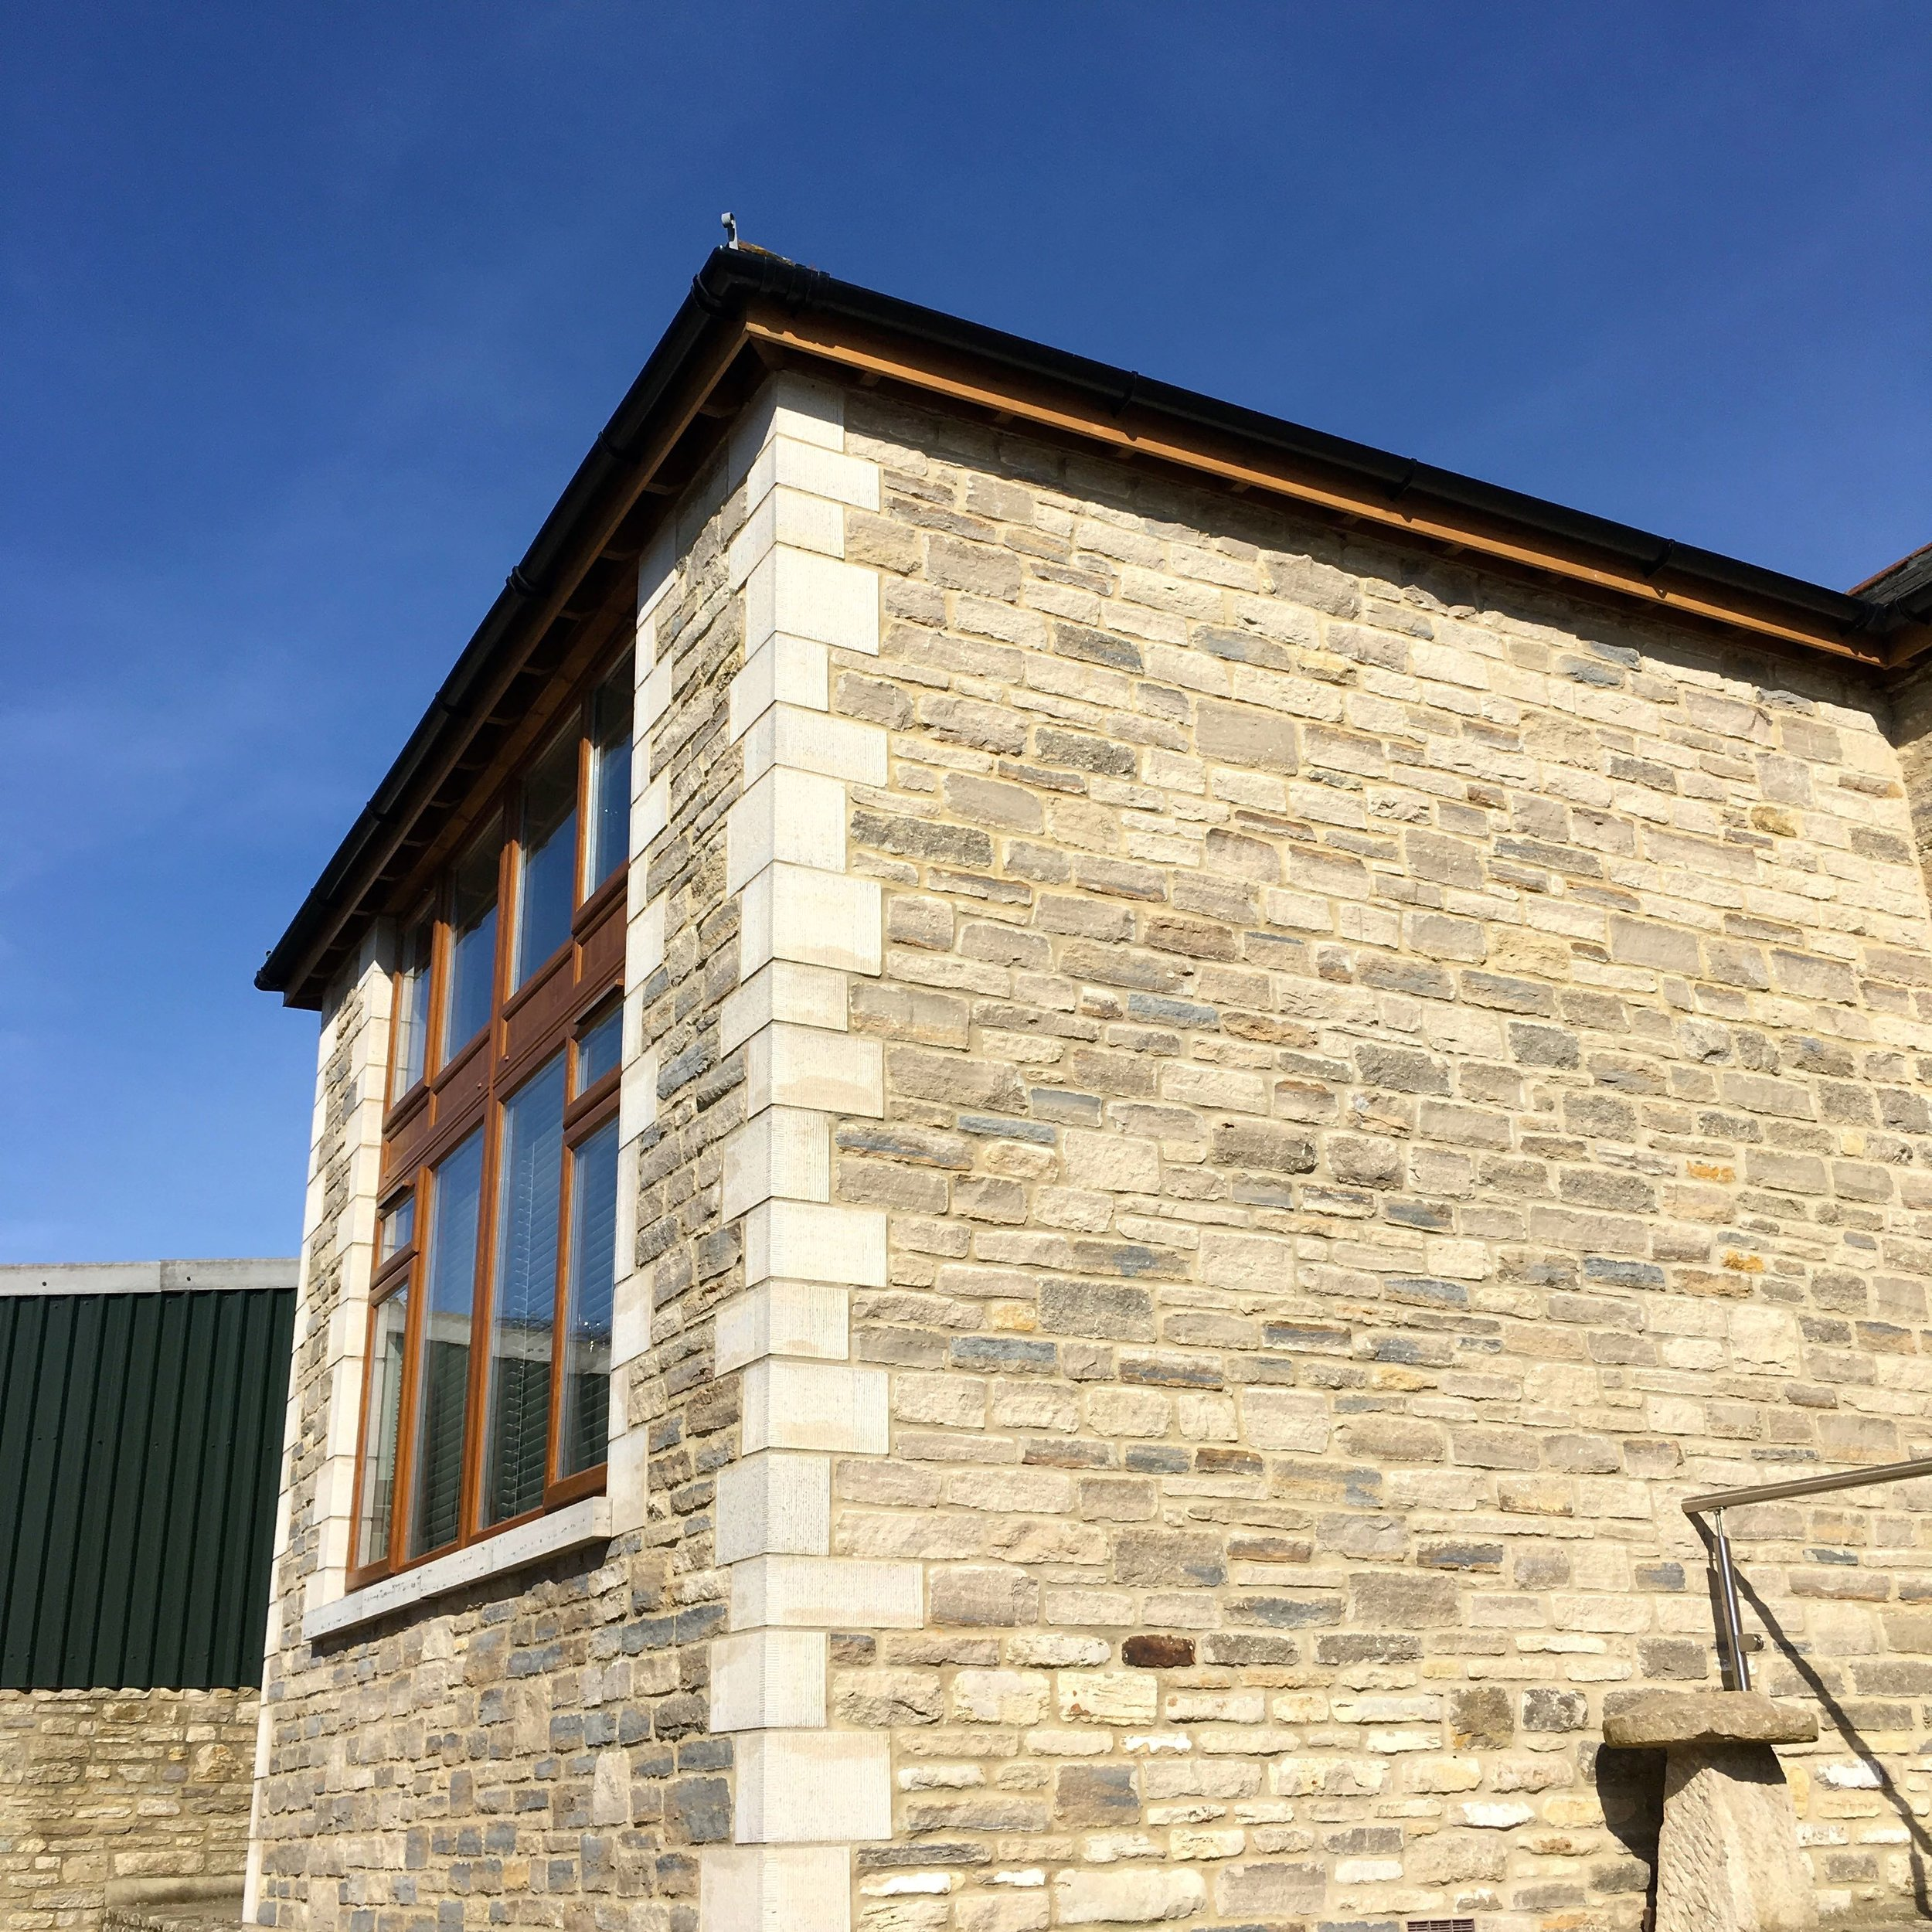 blue skies and the Old Barn near Swanage